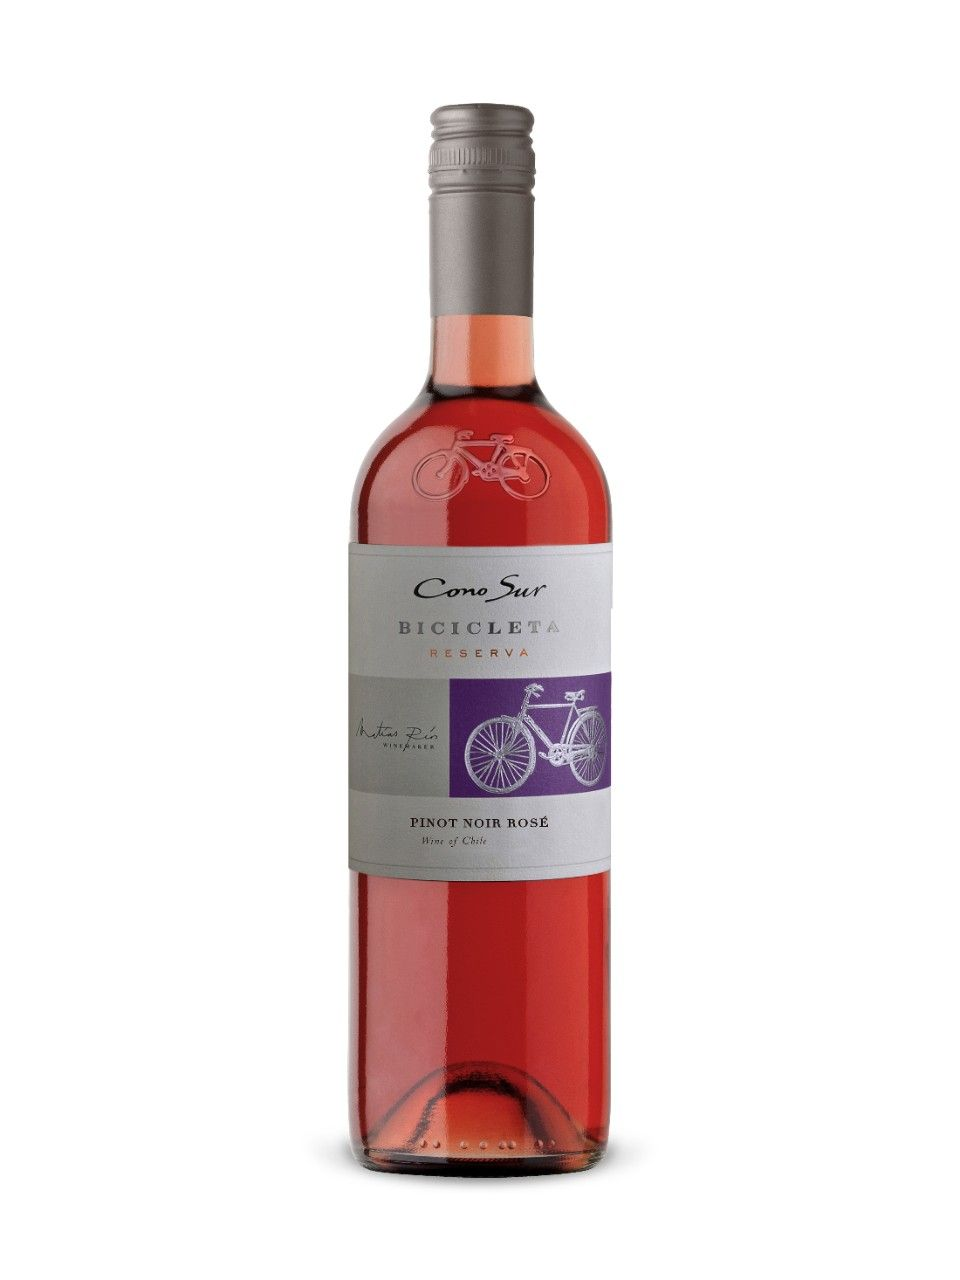 We Found 5 Amazing Rose Wines For Under 15 Cheap Rose Wine Wines